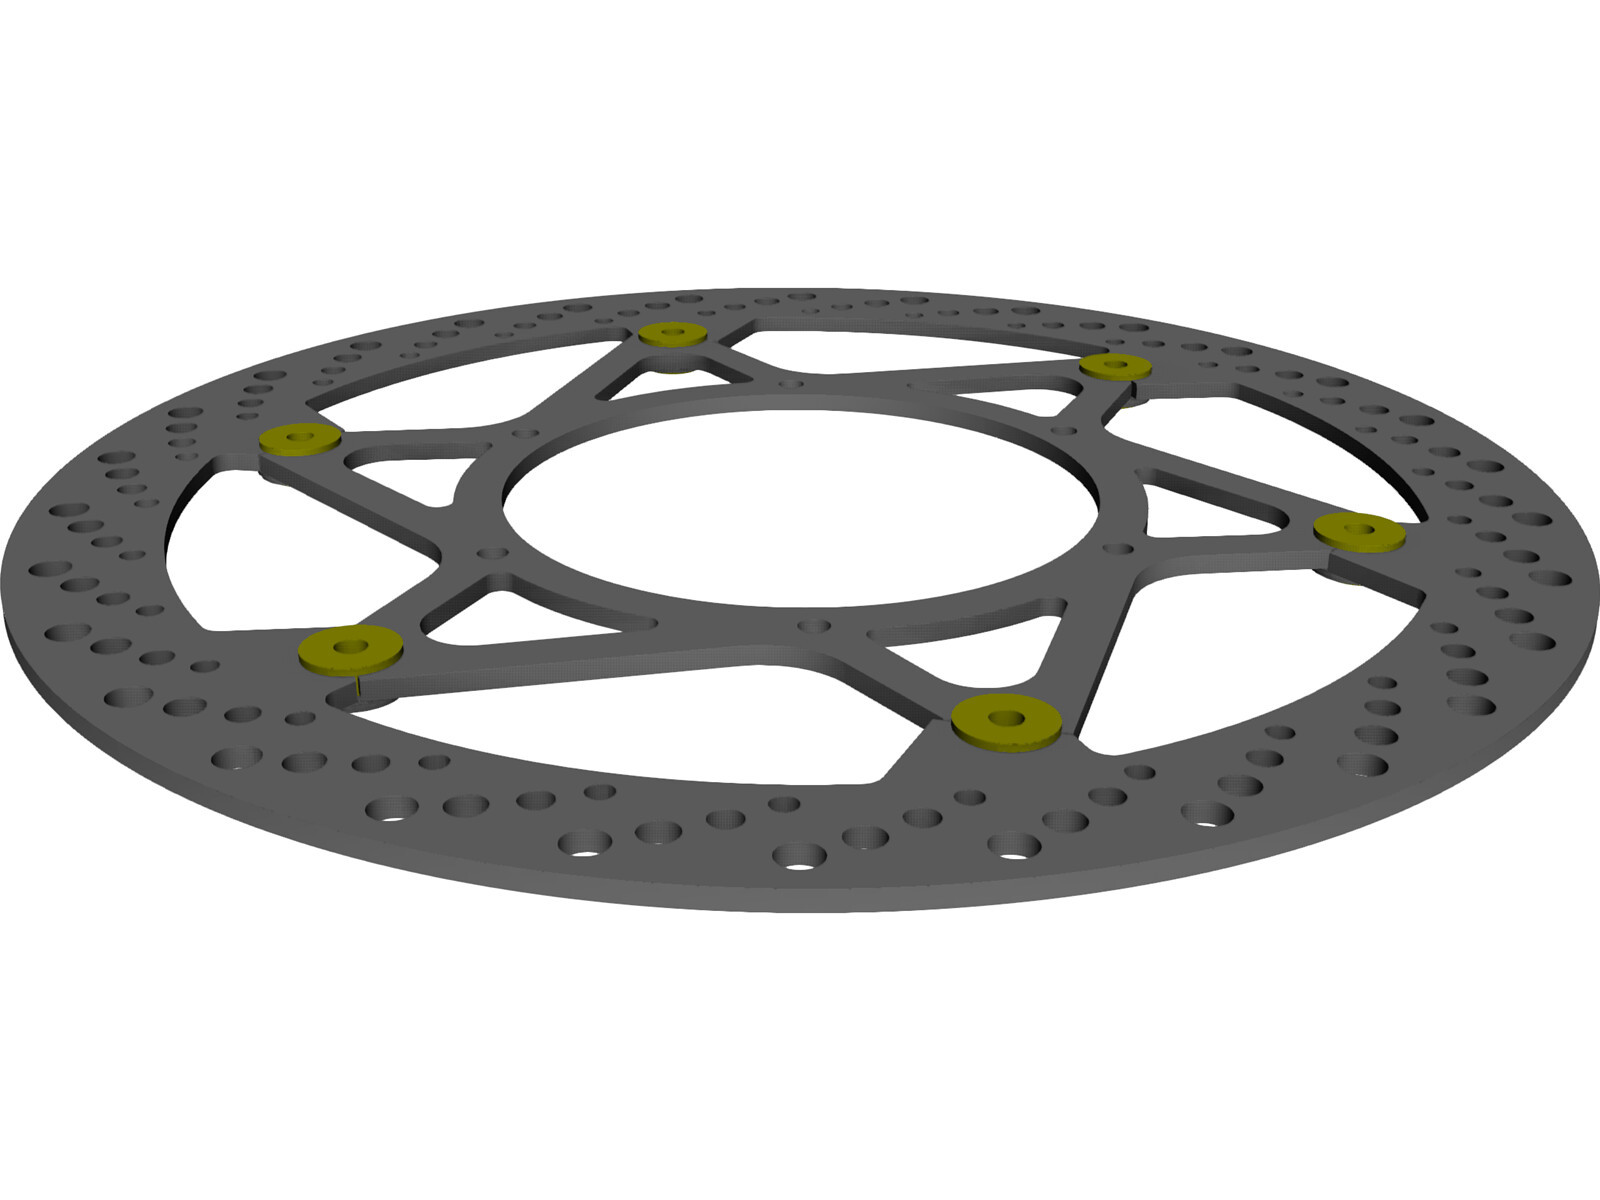 Magura Disc 320mm Complete Right Side 3D Model